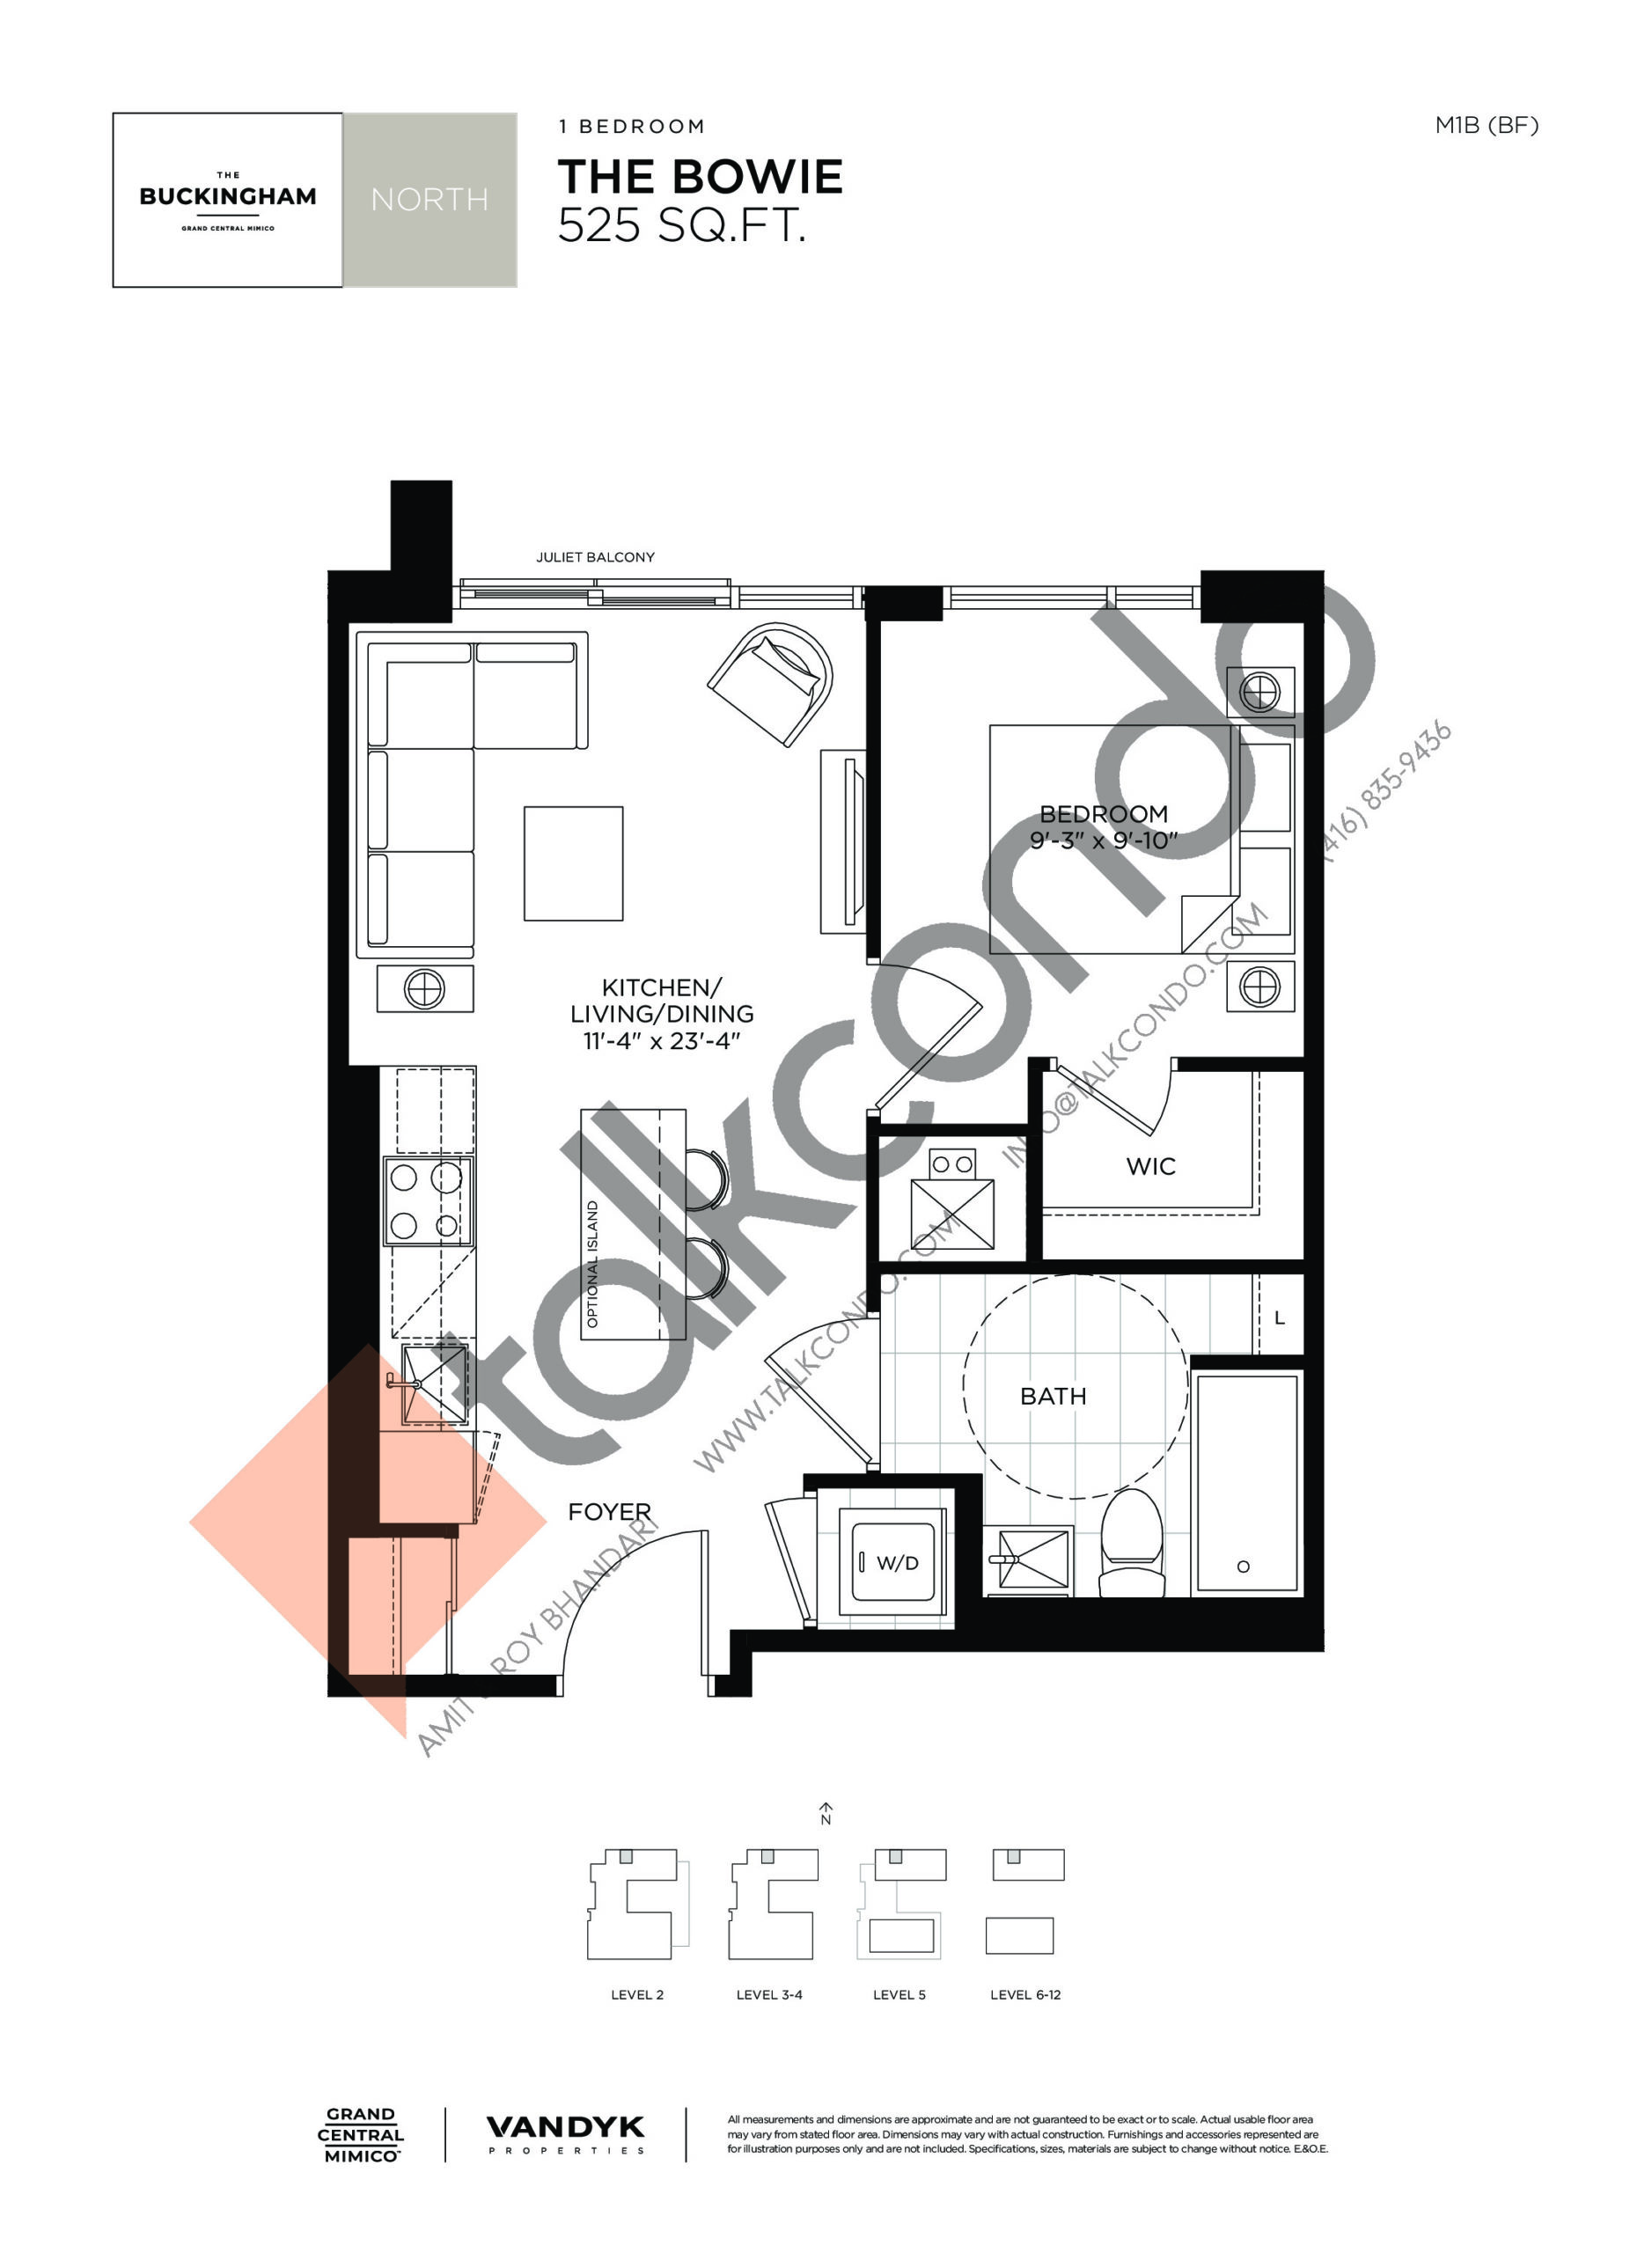 The Bowie Floor Plan at Grand Central Mimico Condos - 525 sq.ft